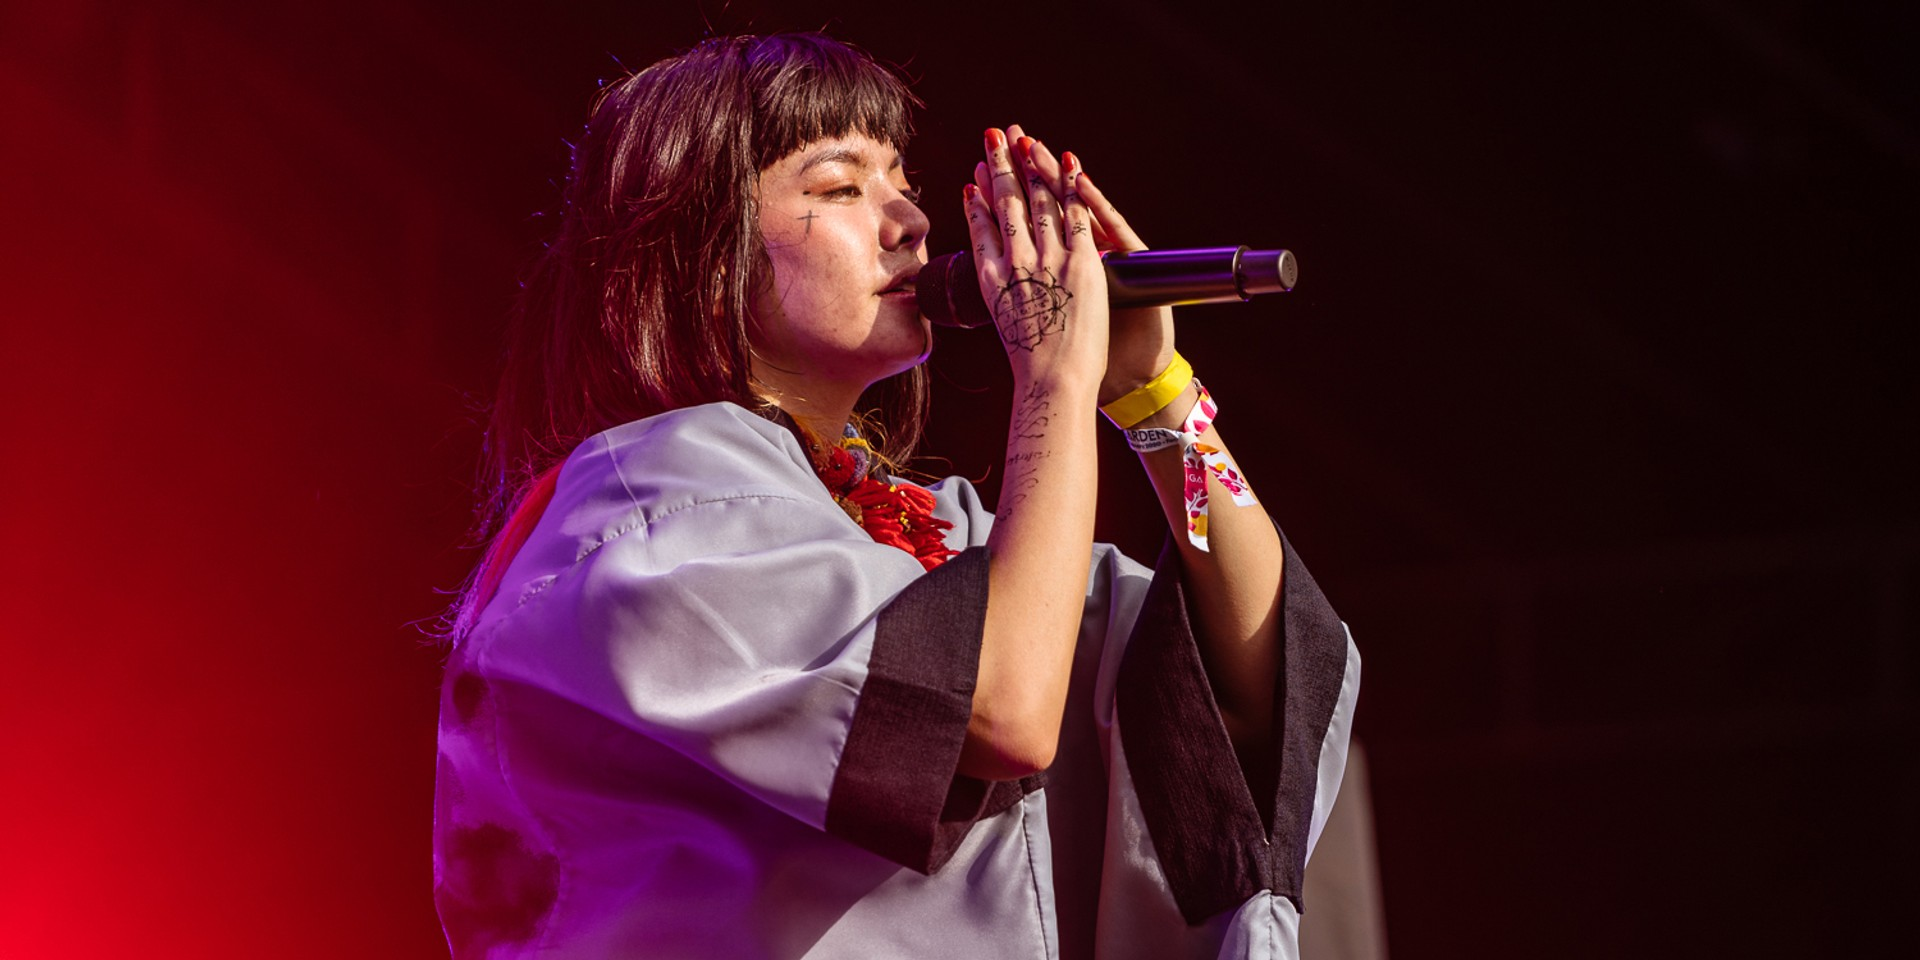 An Interview With Pyra: Bringing Southeast Asian Music To A Global Audience